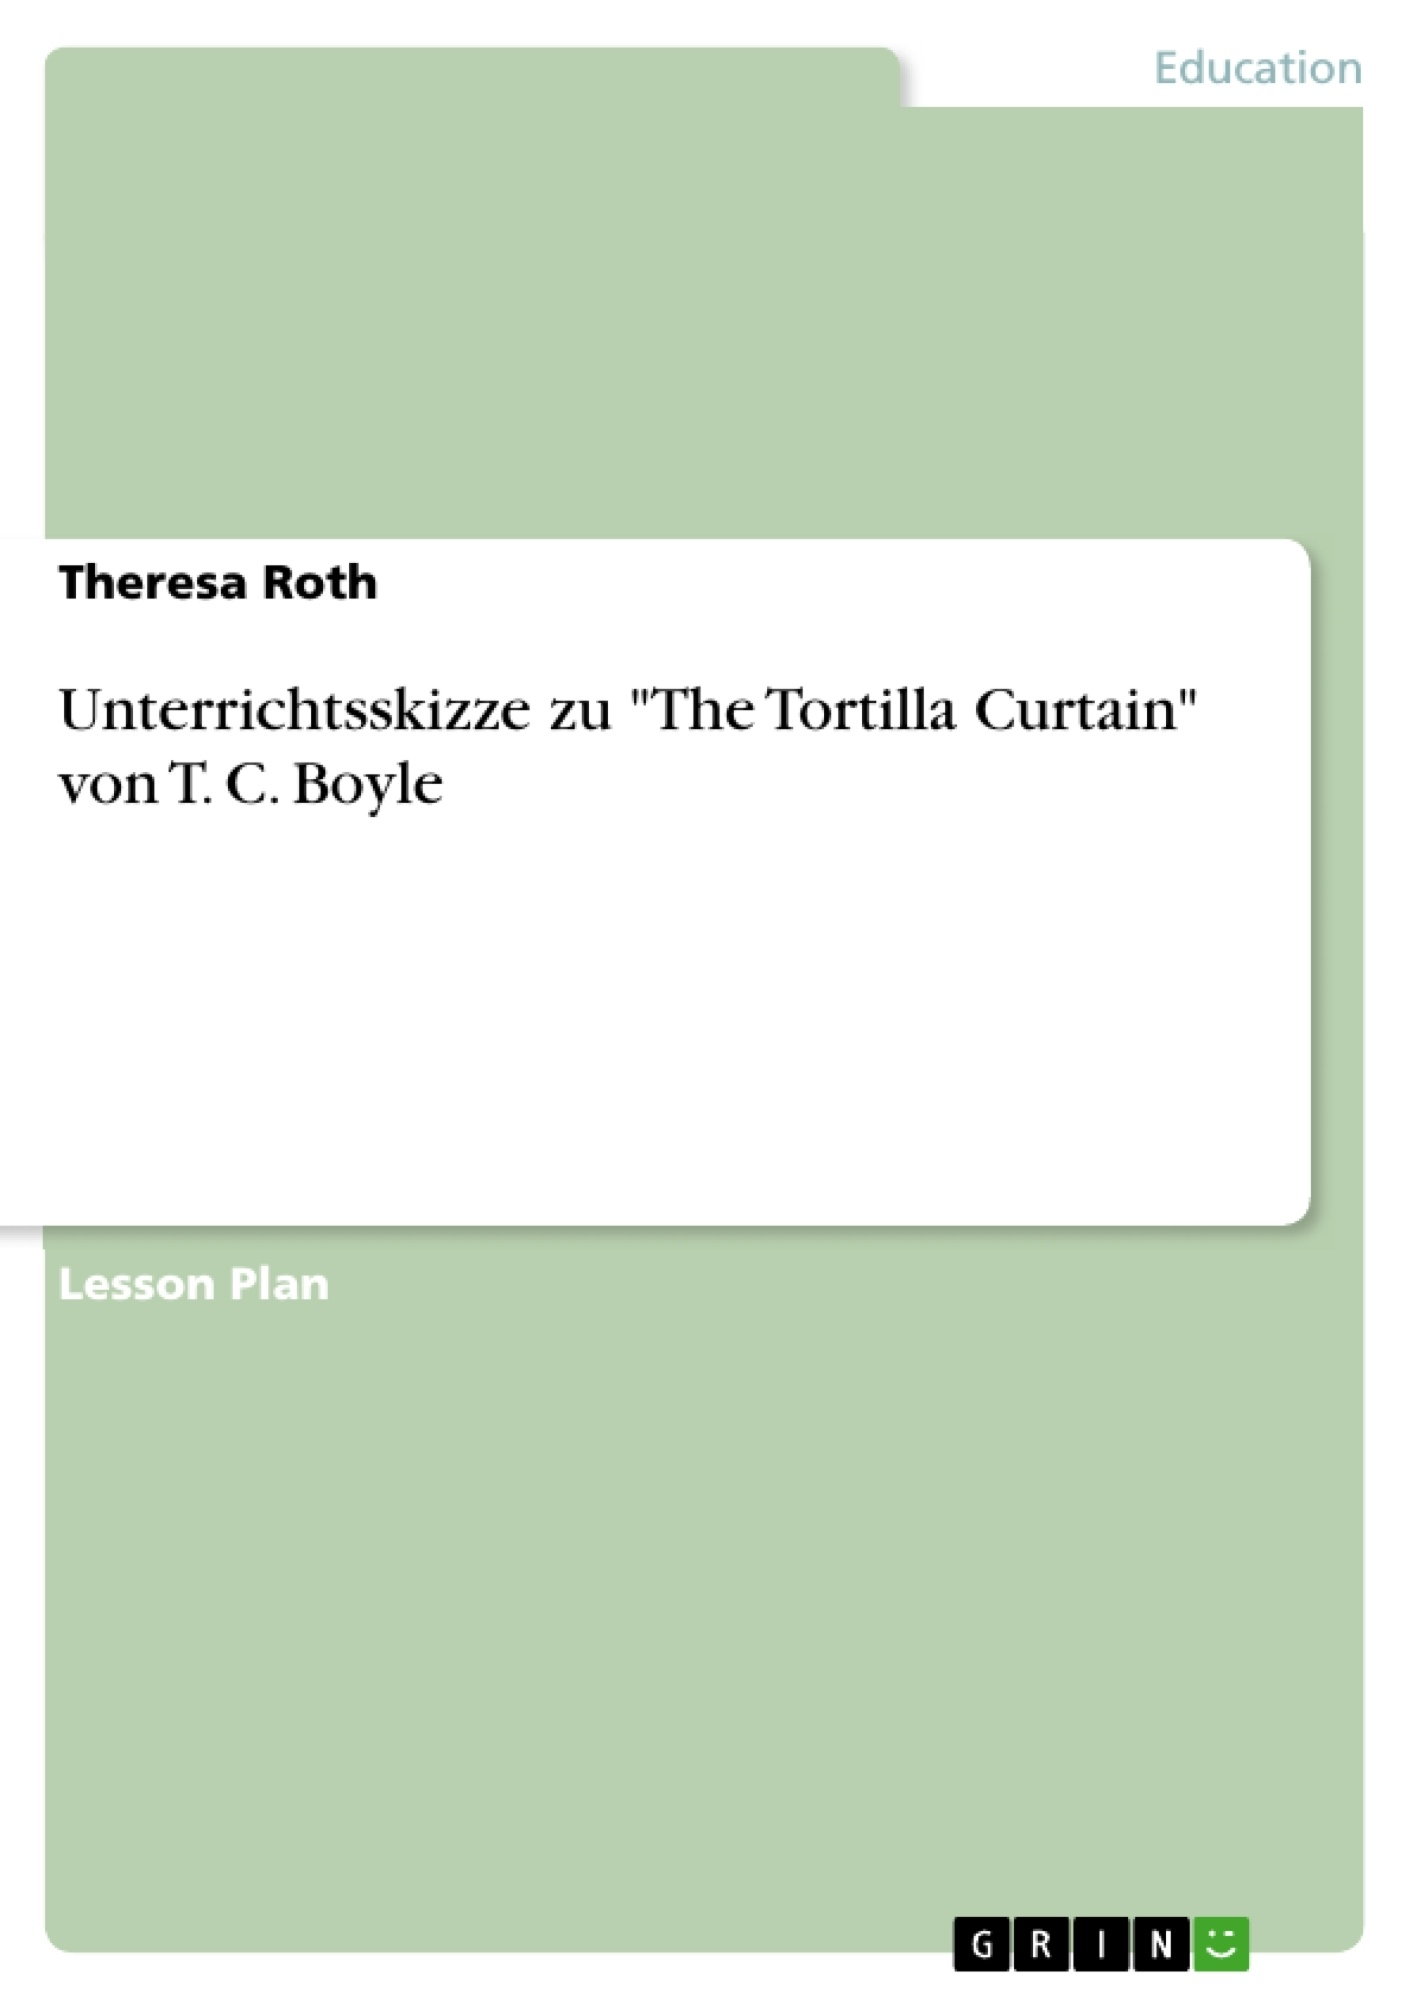 unterrichtsskizze zu the tortilla curtain von t c boyle  upload your own papers earn money and win an iphone x